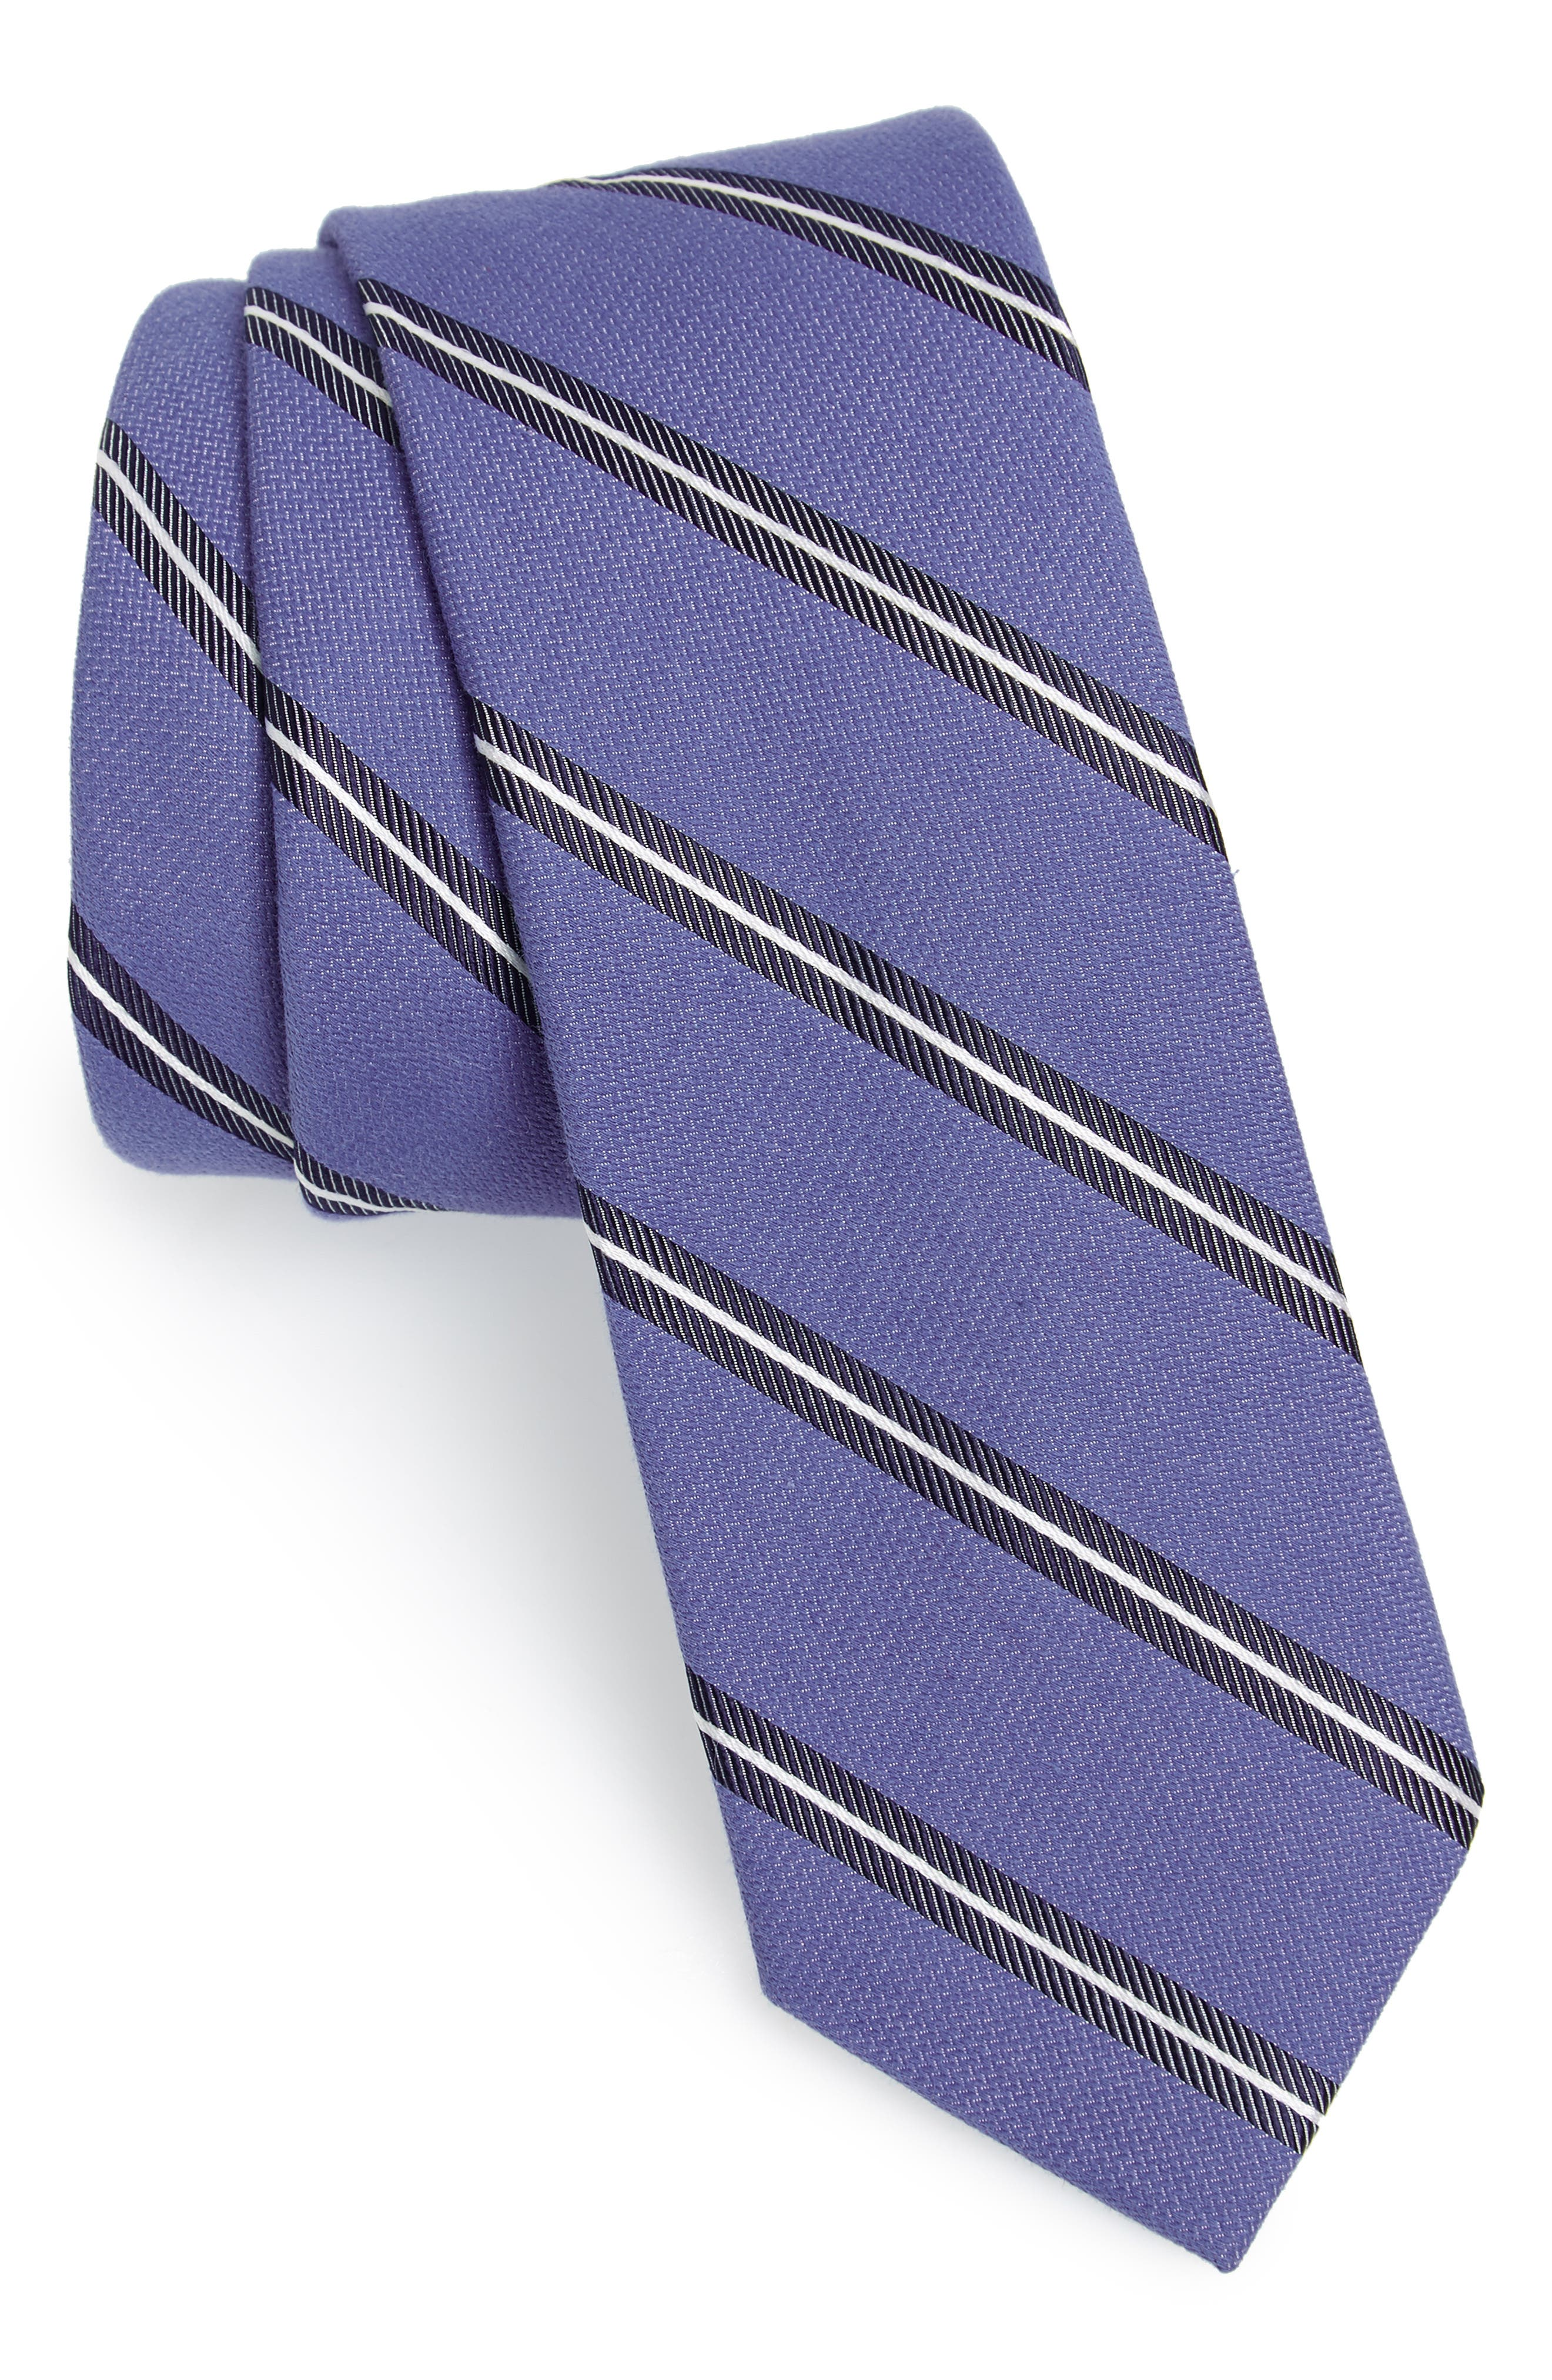 Edinger Stripe Silk & Cotton Tie,                         Main,                         color, Blue